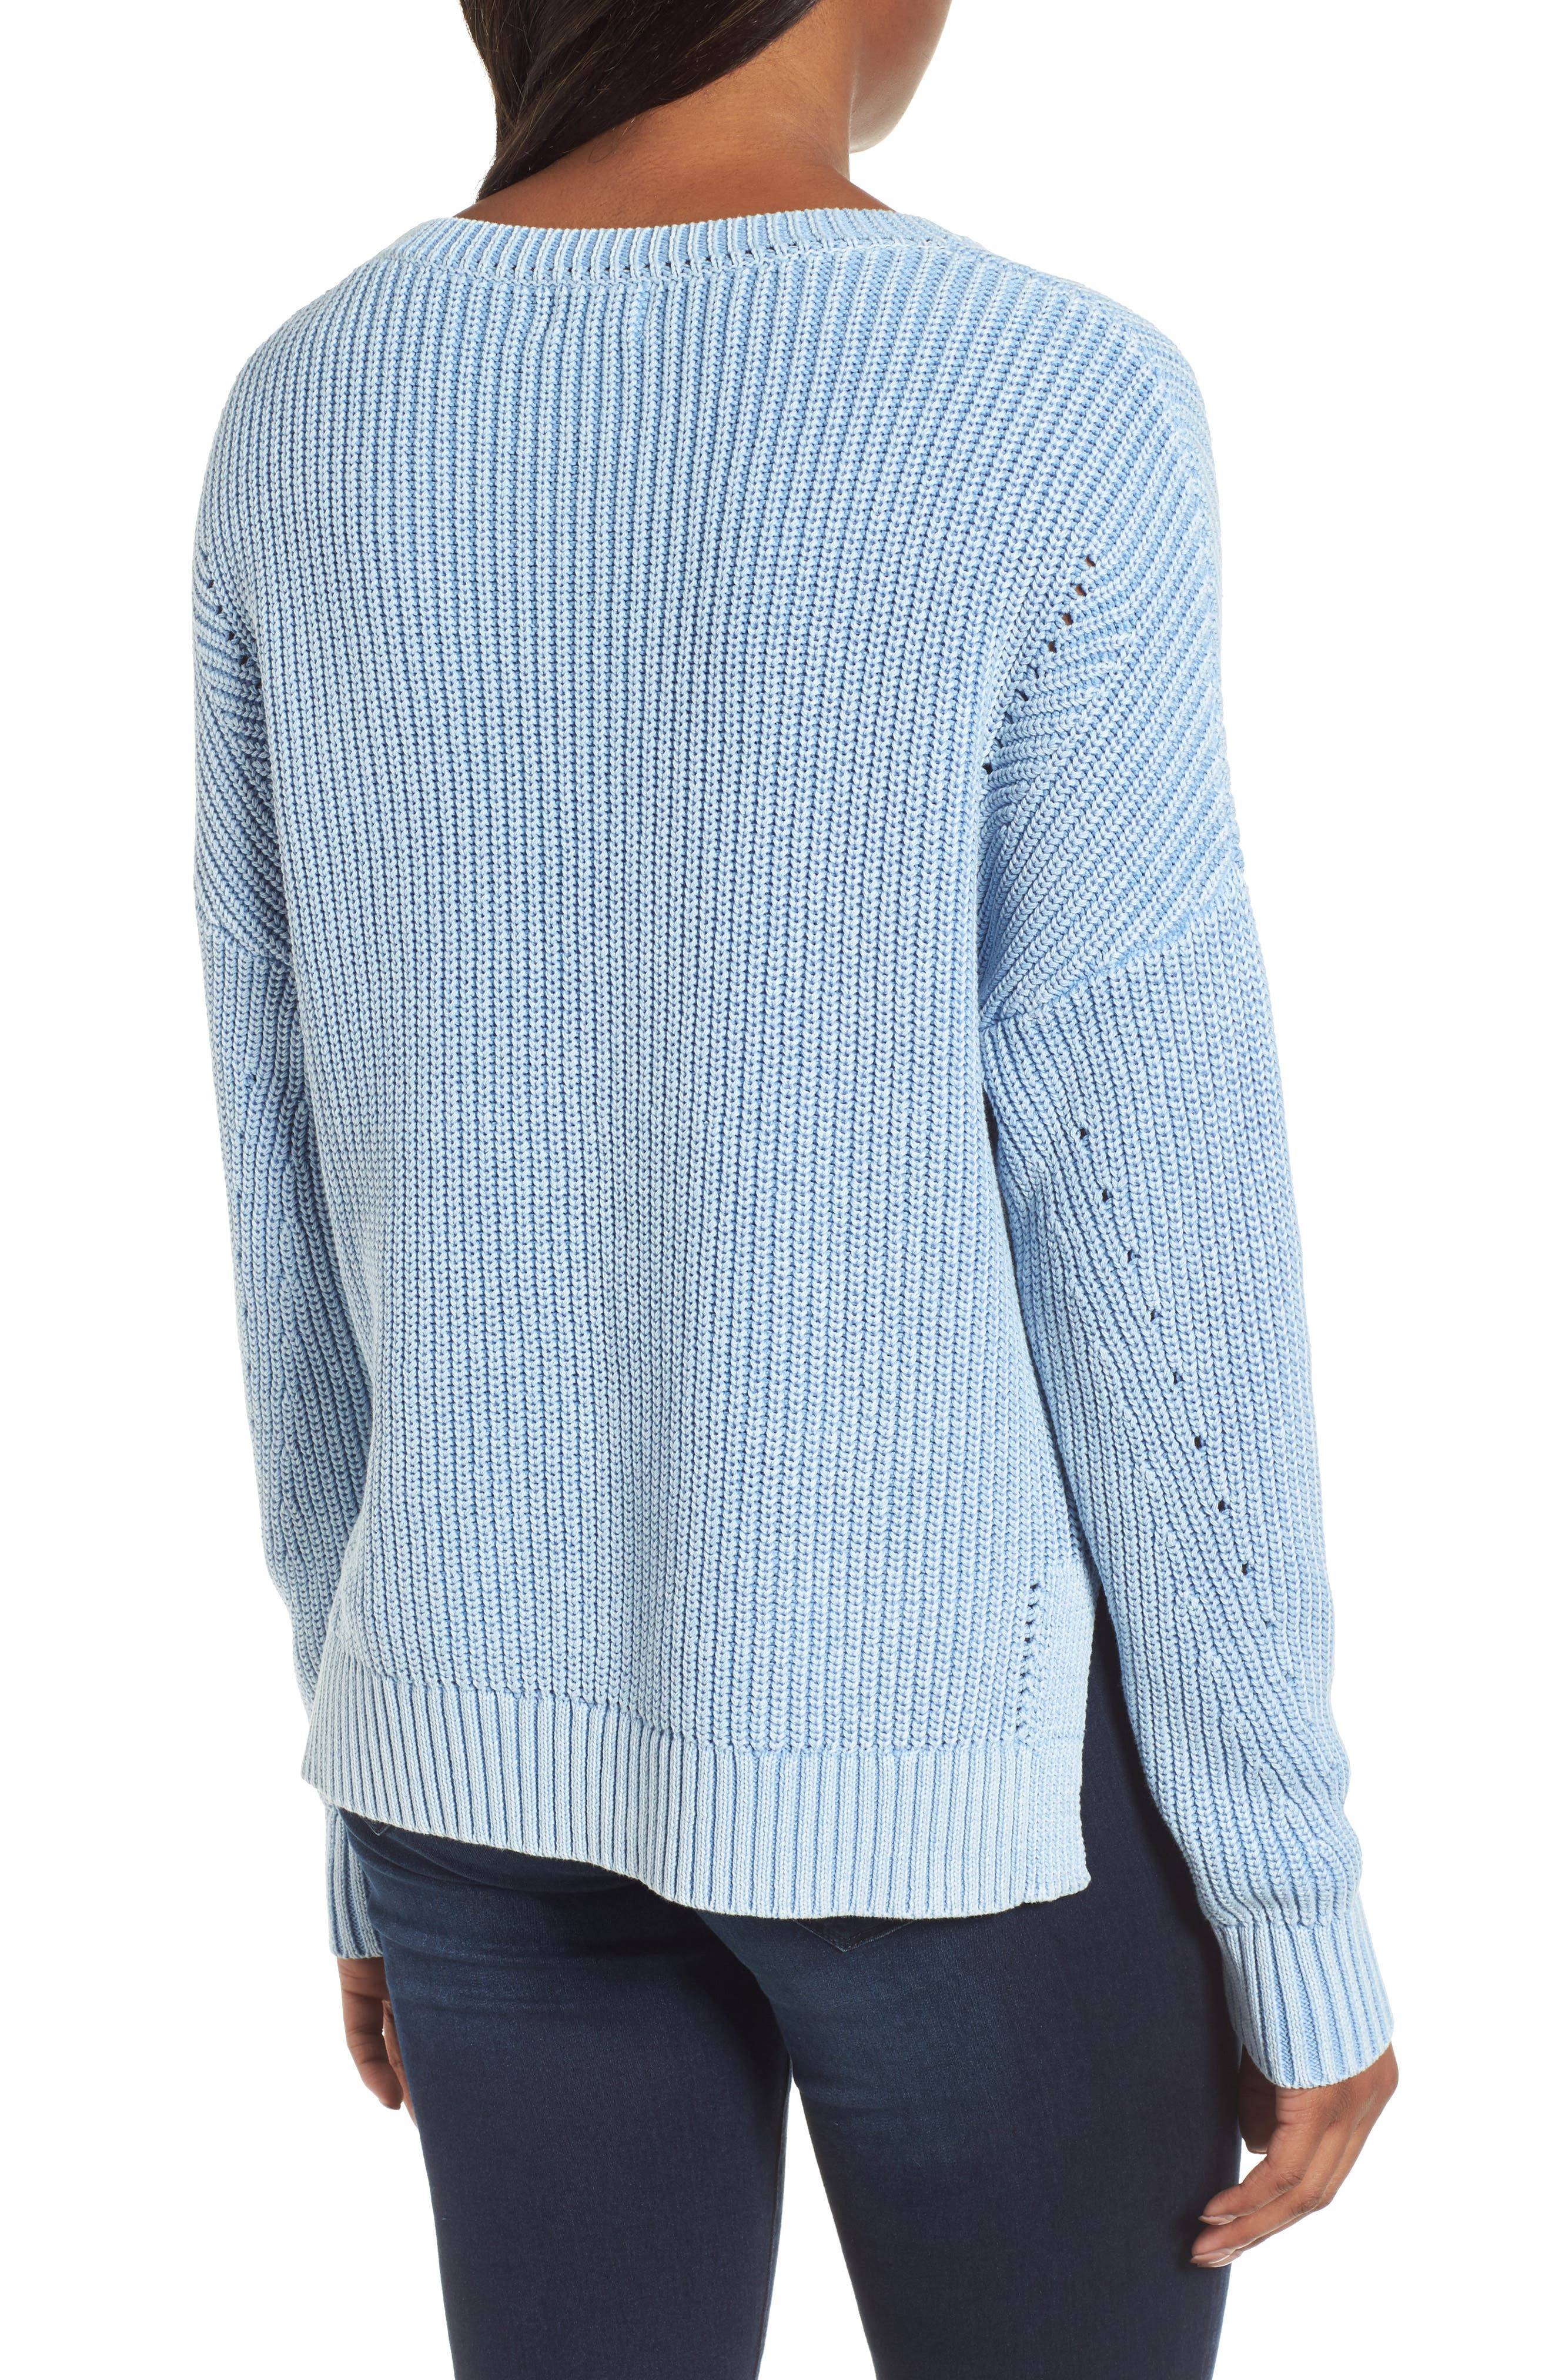 Shaker Stitch Cotton Sweater,                             Alternate thumbnail 3, color,